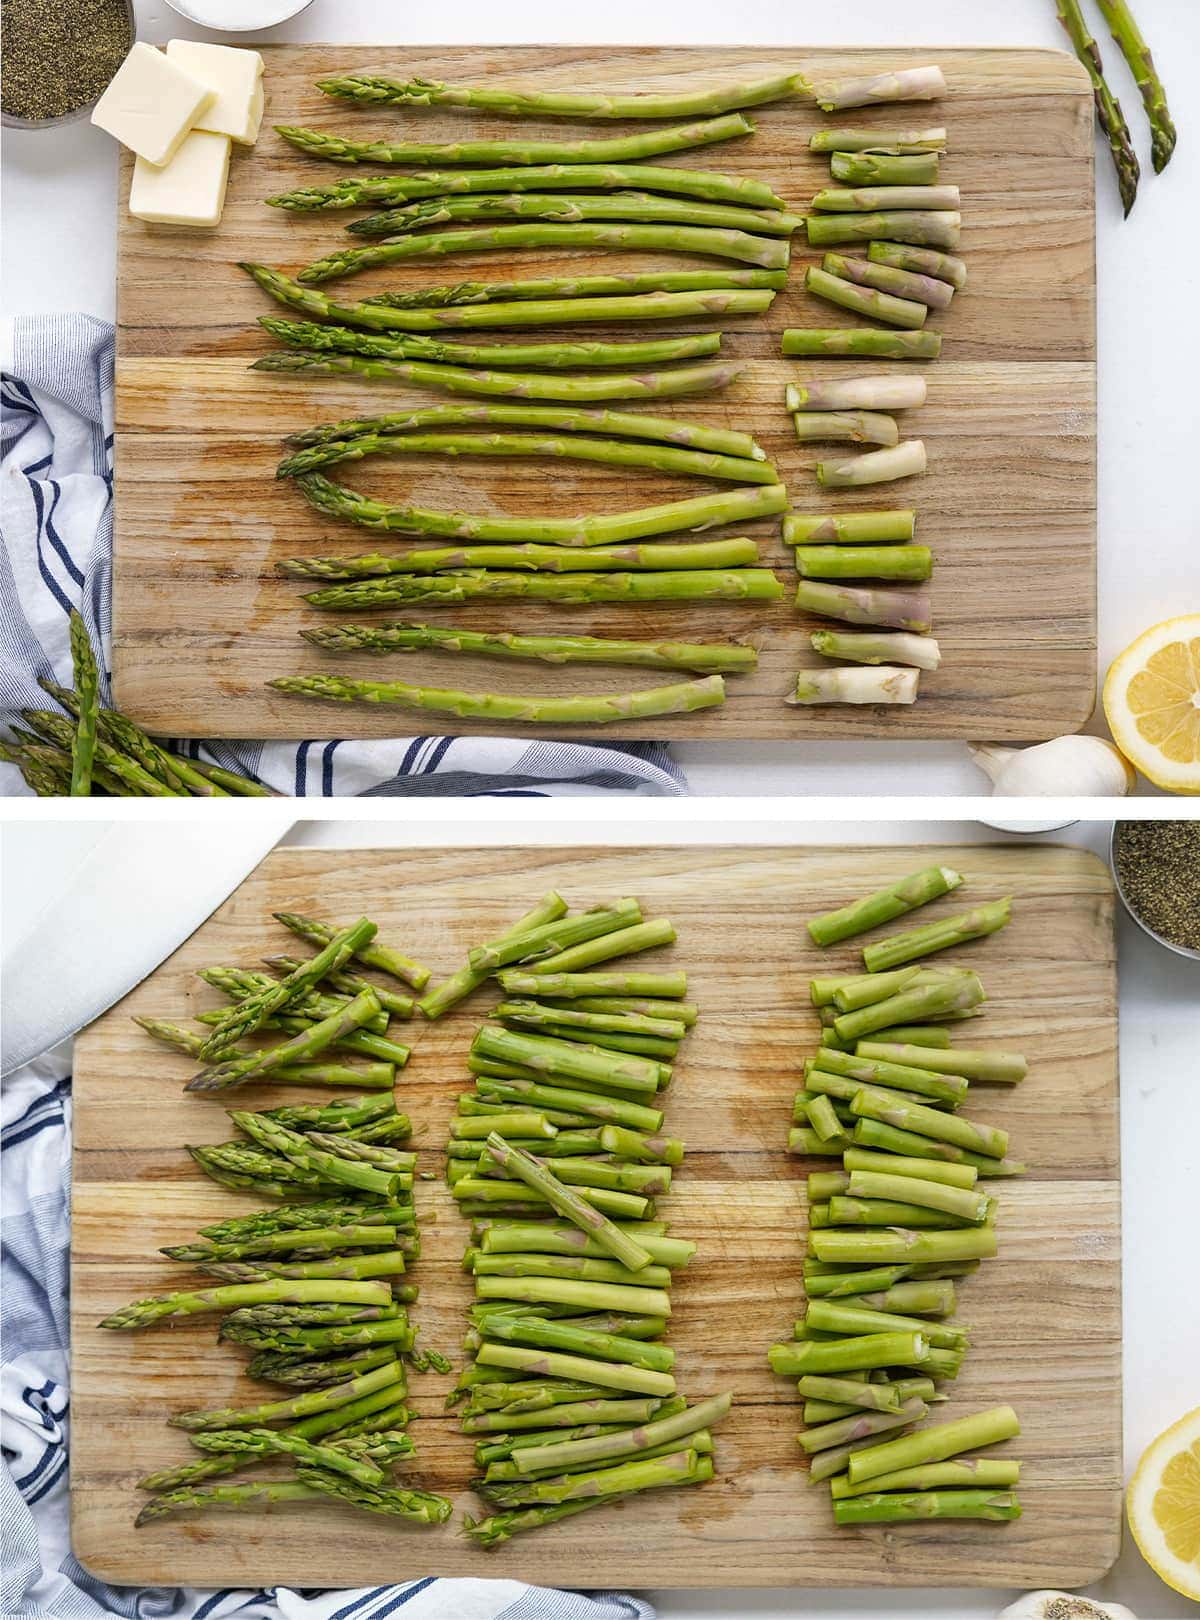 two images showing how to properly trim asparagus